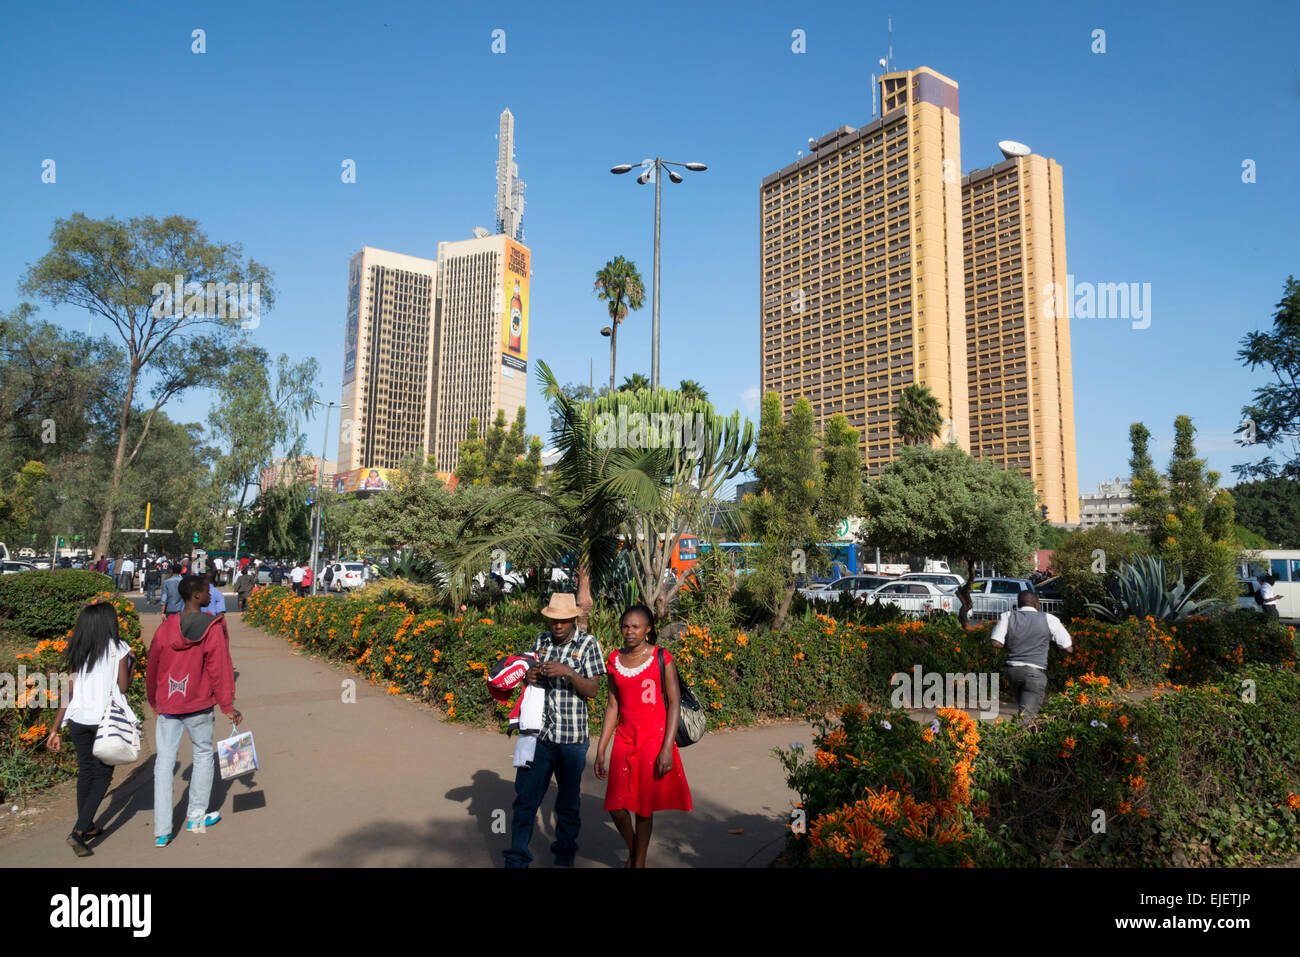 Central park. Downtown Nairobi. Kenya. - Stock Image